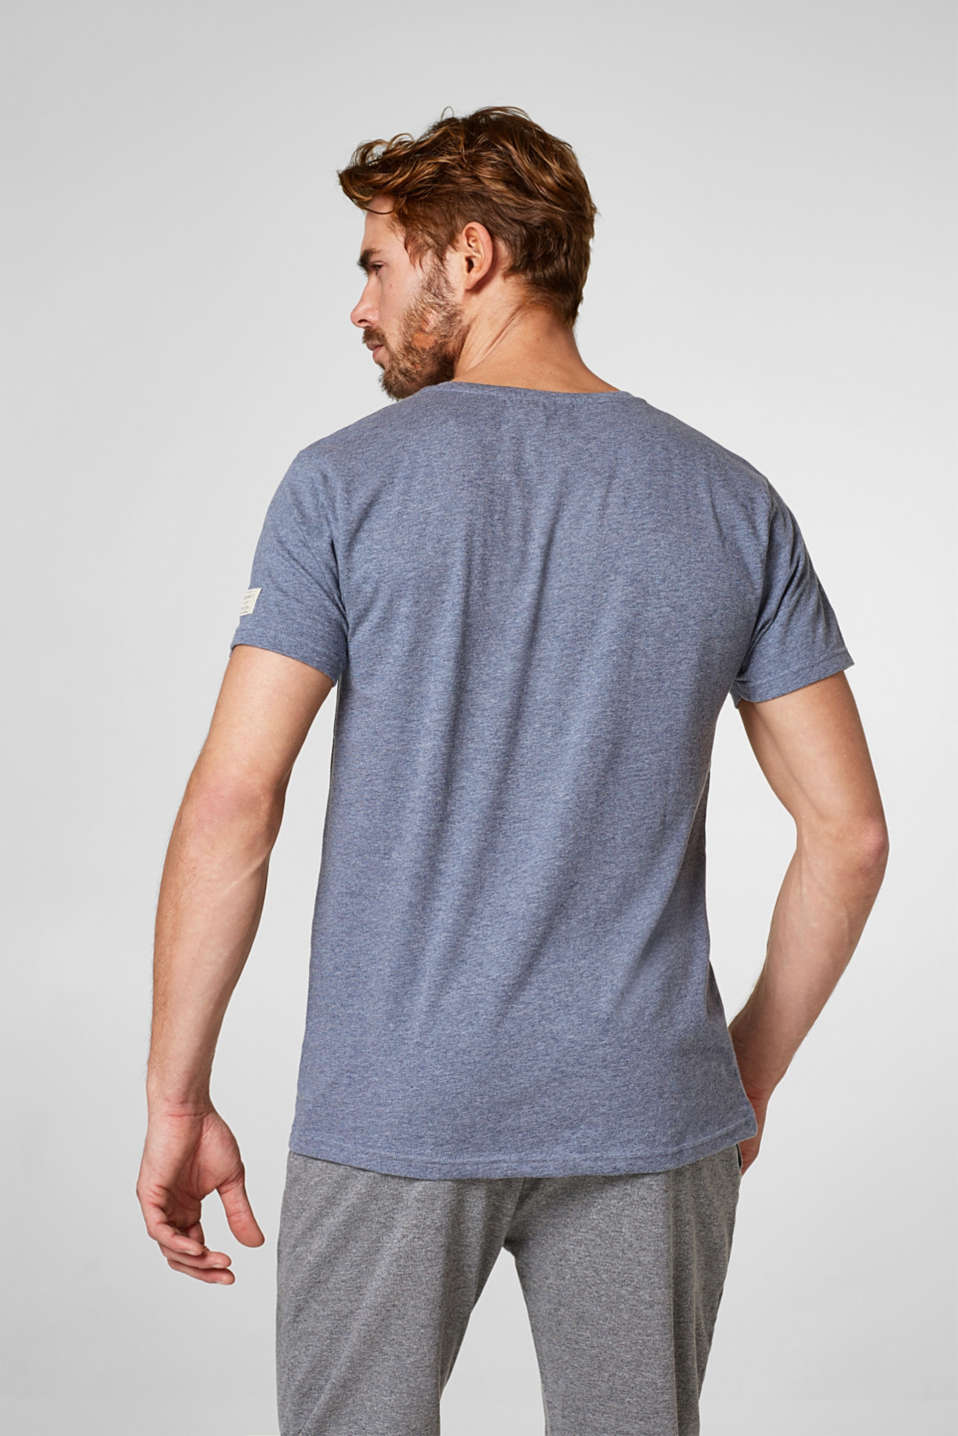 Gemêleerd basic T-shirt